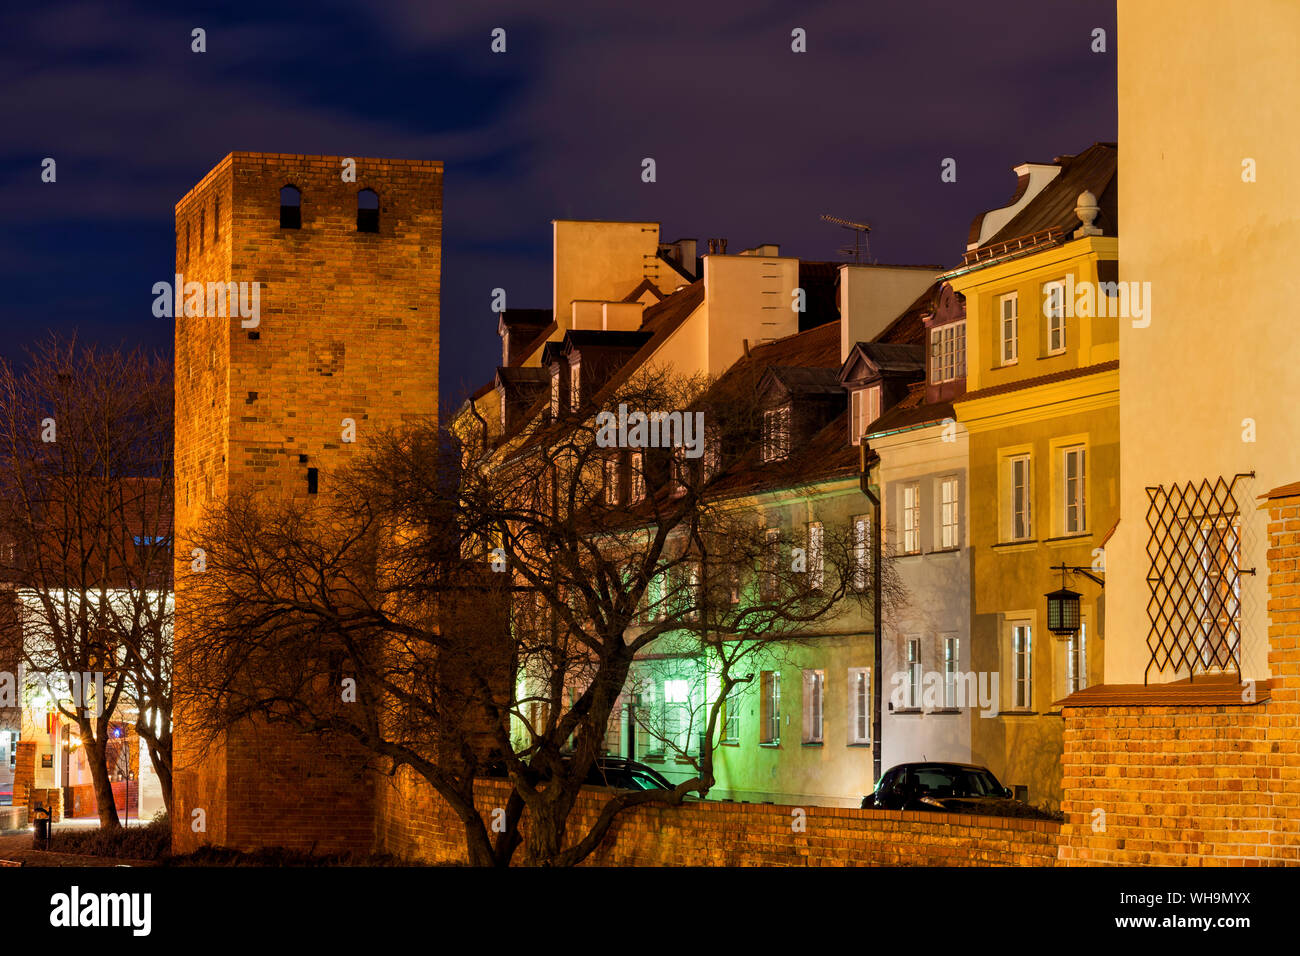 Ccity wall tower and traditional houses at night, Warsaw, Poland Stock Photo